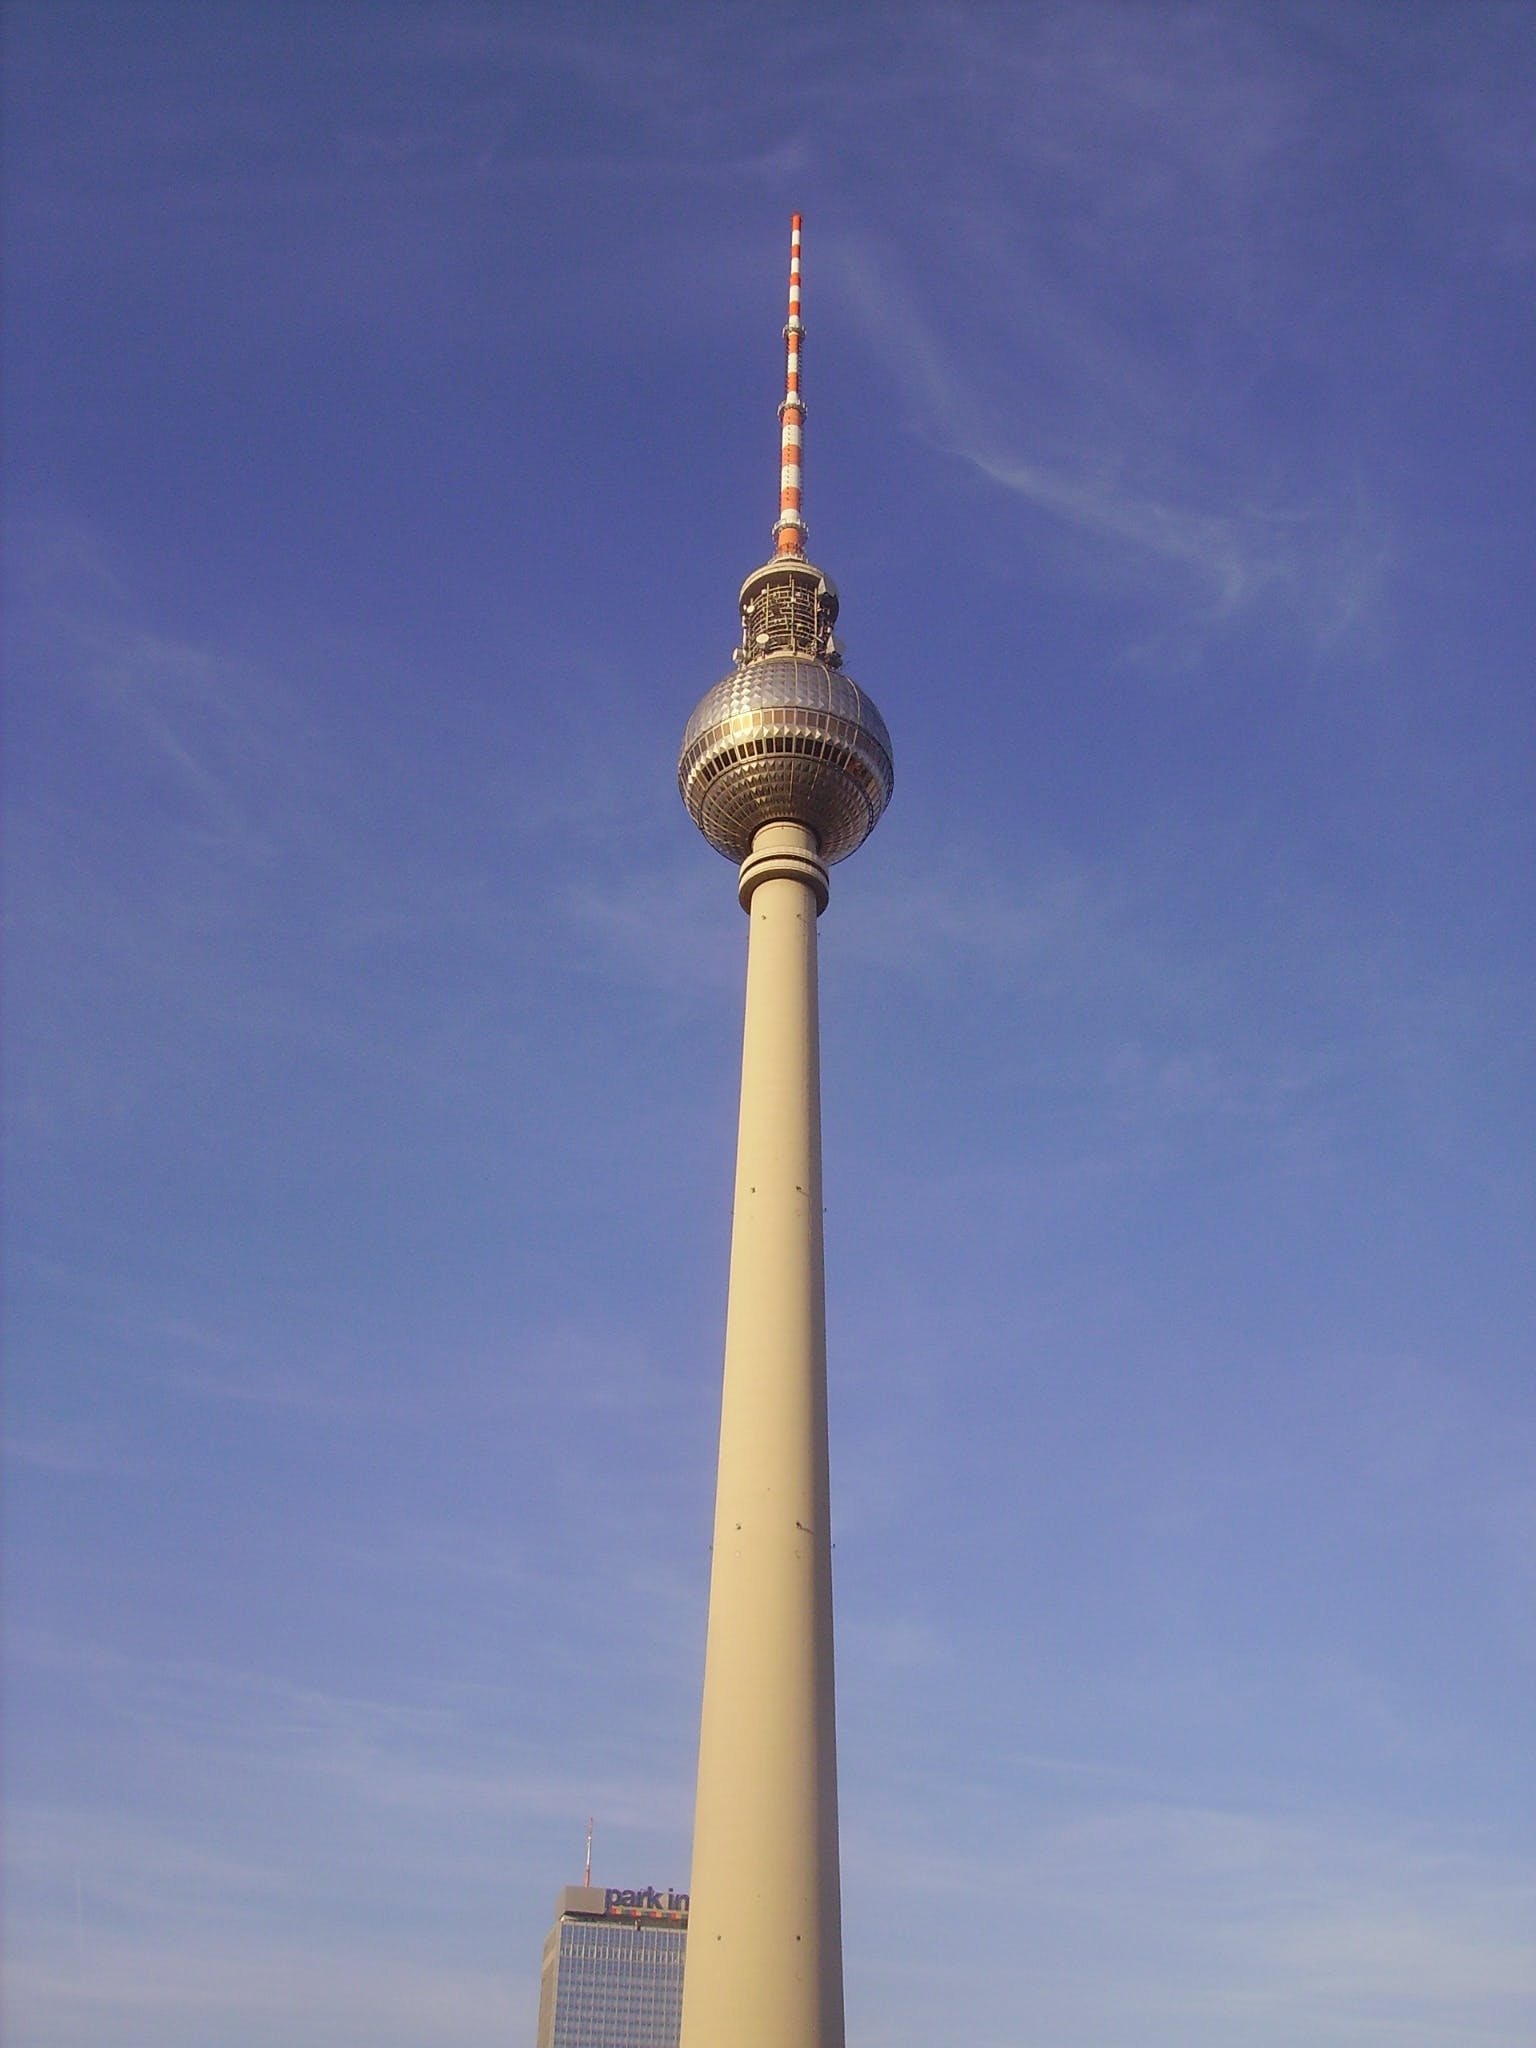 alexanderplatz, berlin, deutsch